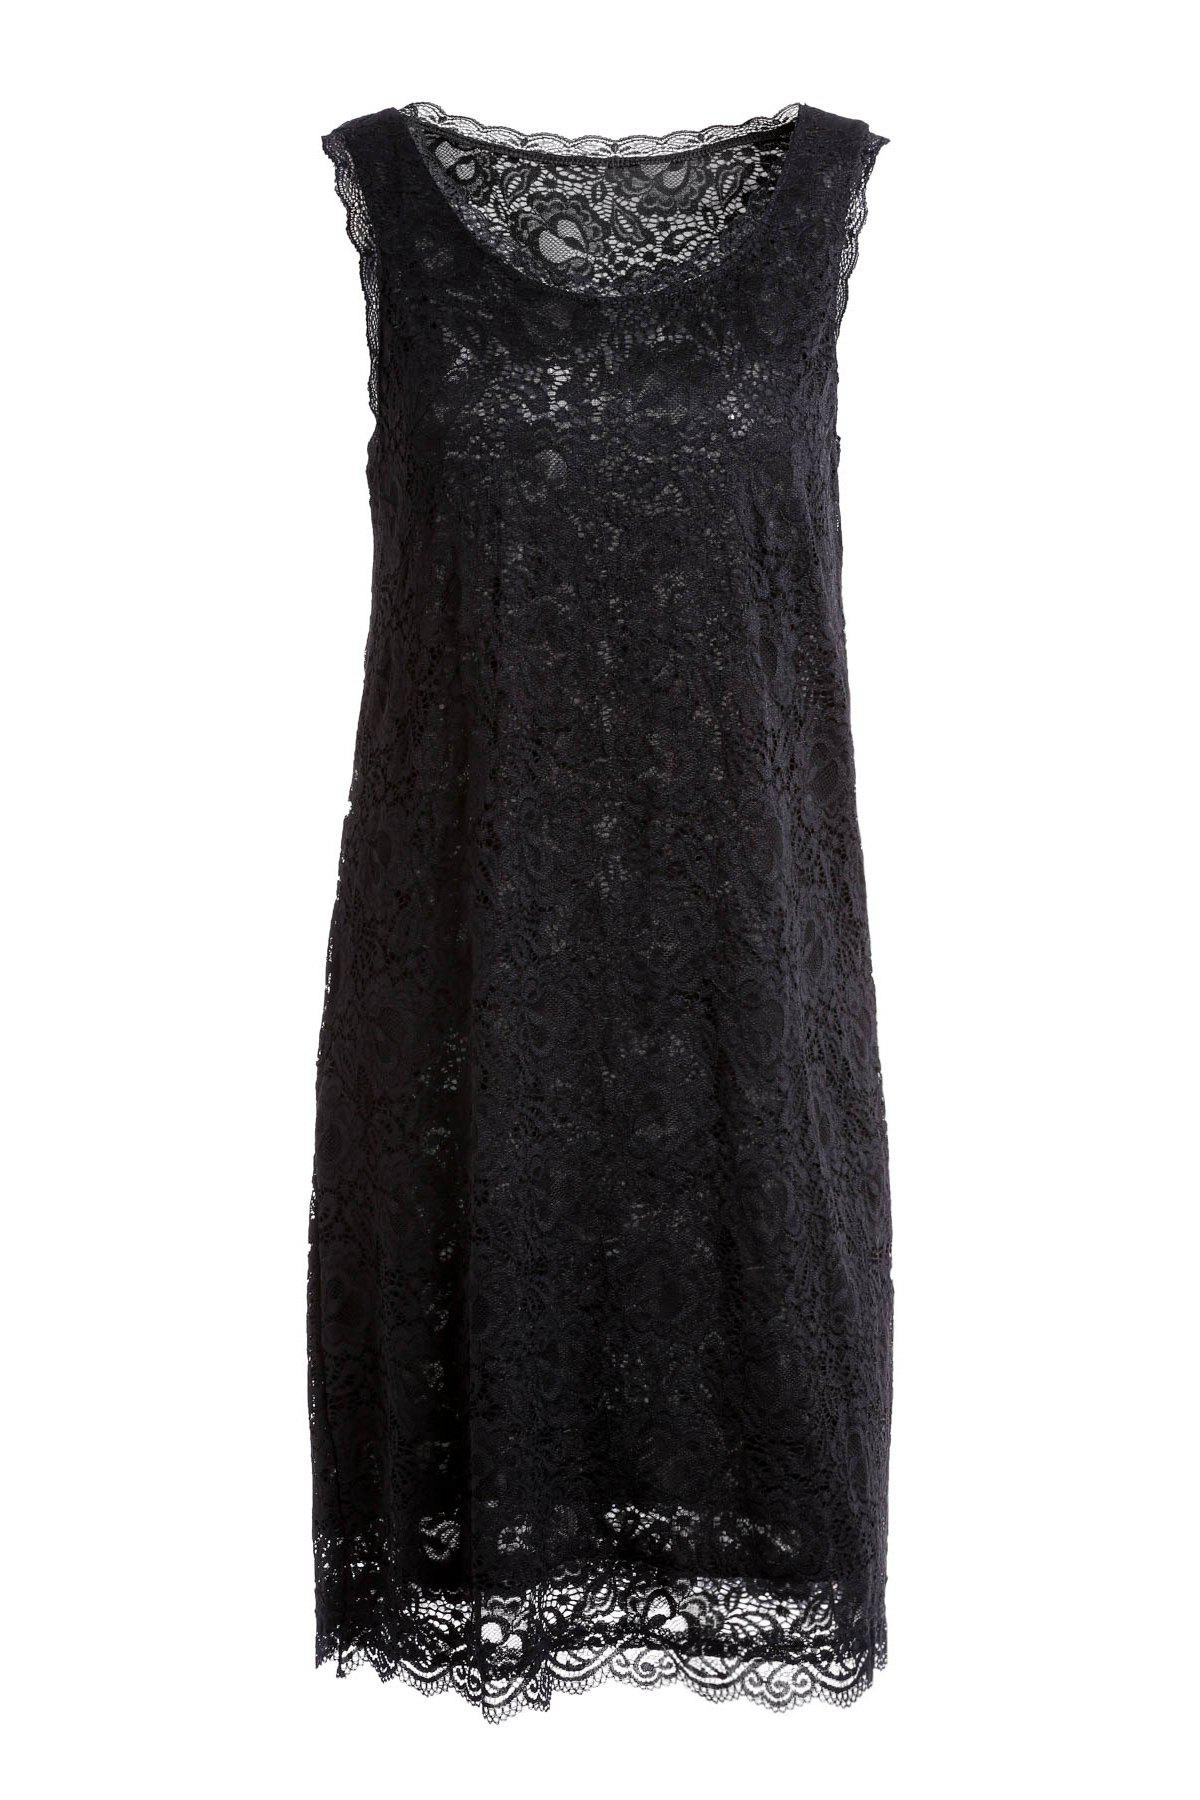 Fashionable Sleeveless Scoop Neck Pure Color Hollow Out Women's Dress - BLACK ONE SIZE(FIT SIZE XS TO M)